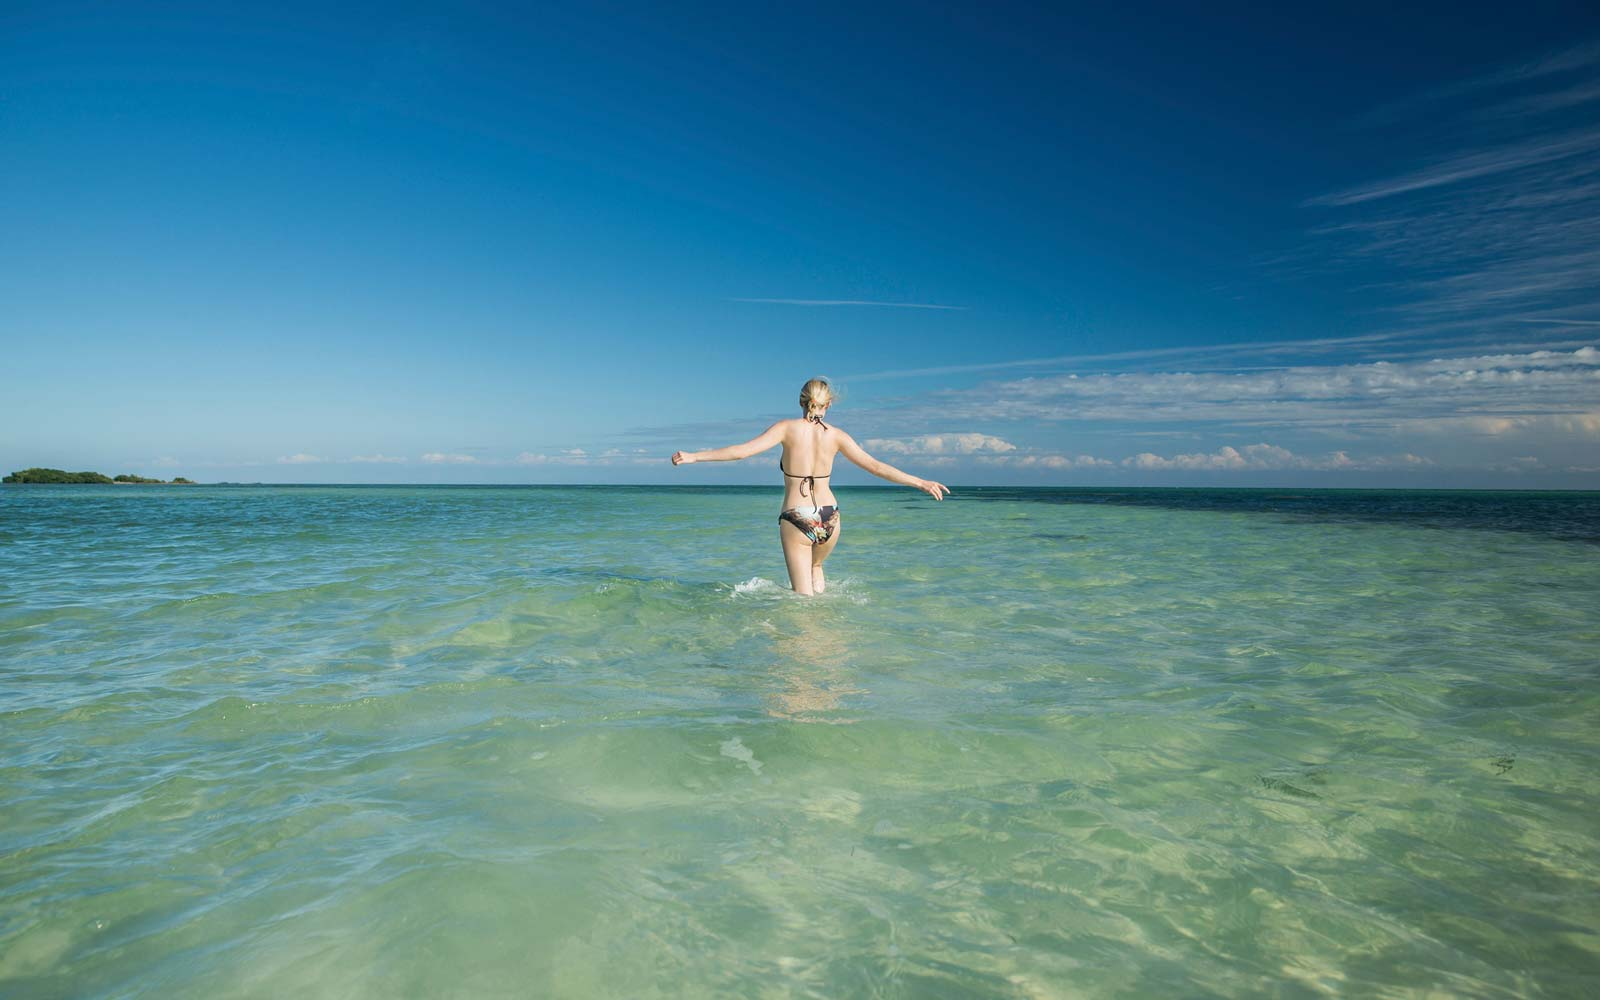 USA, Florida, Key West, Bahia Honda State Park, back view of woman wading into the sea